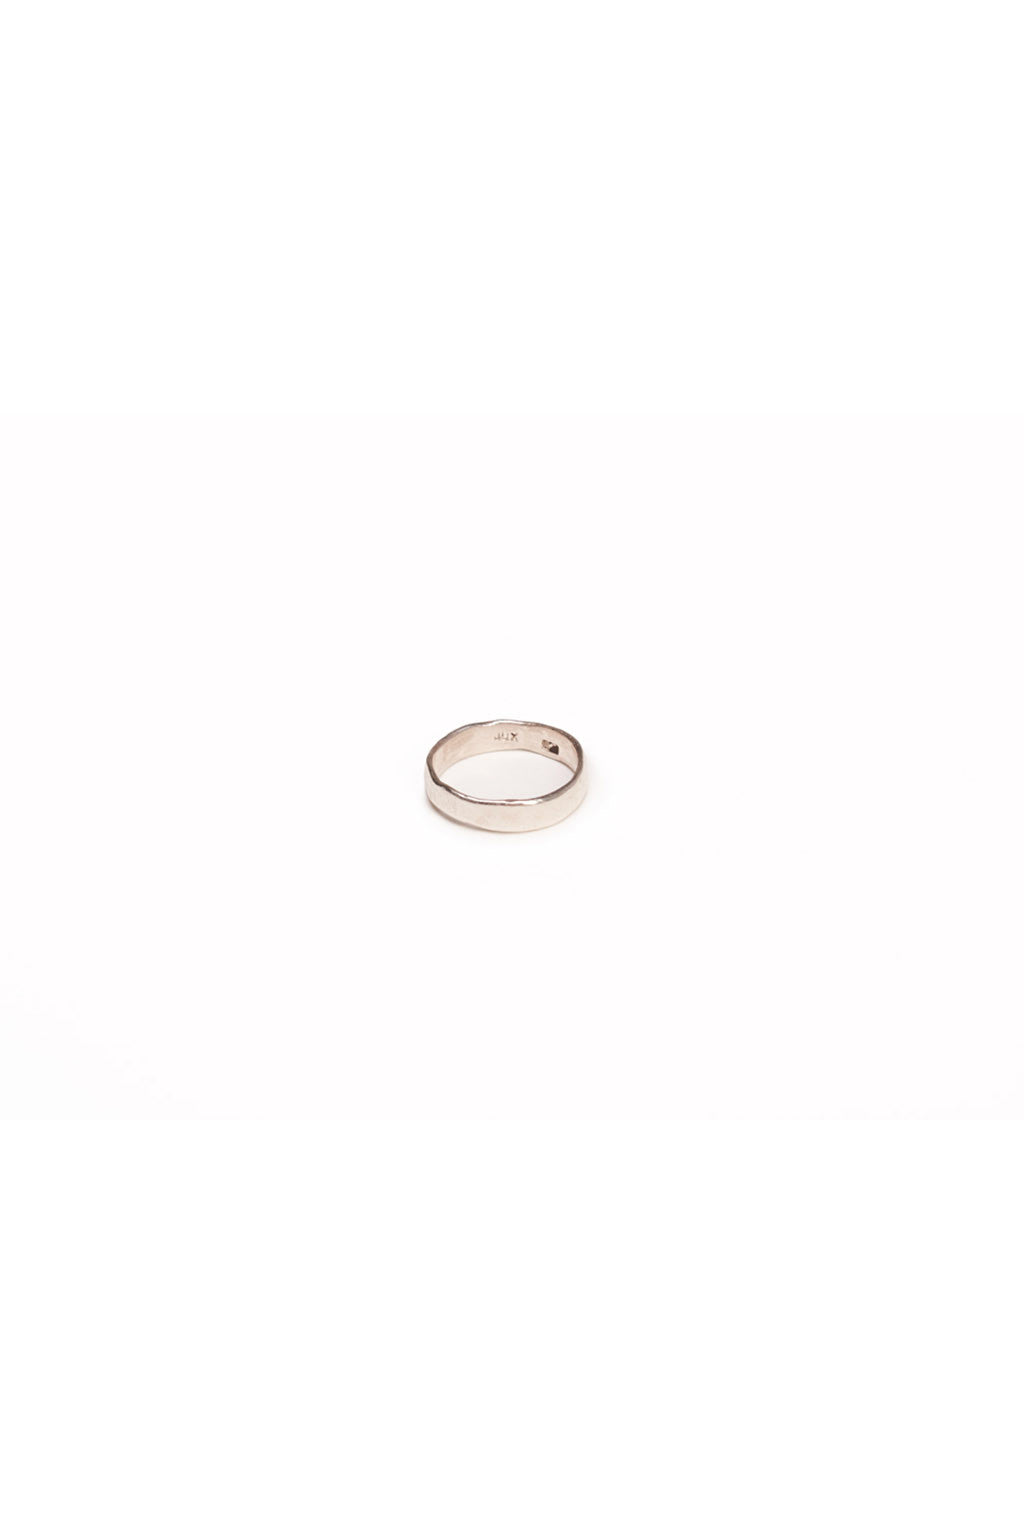 'PHAT' RING BY NEEDY X JUX